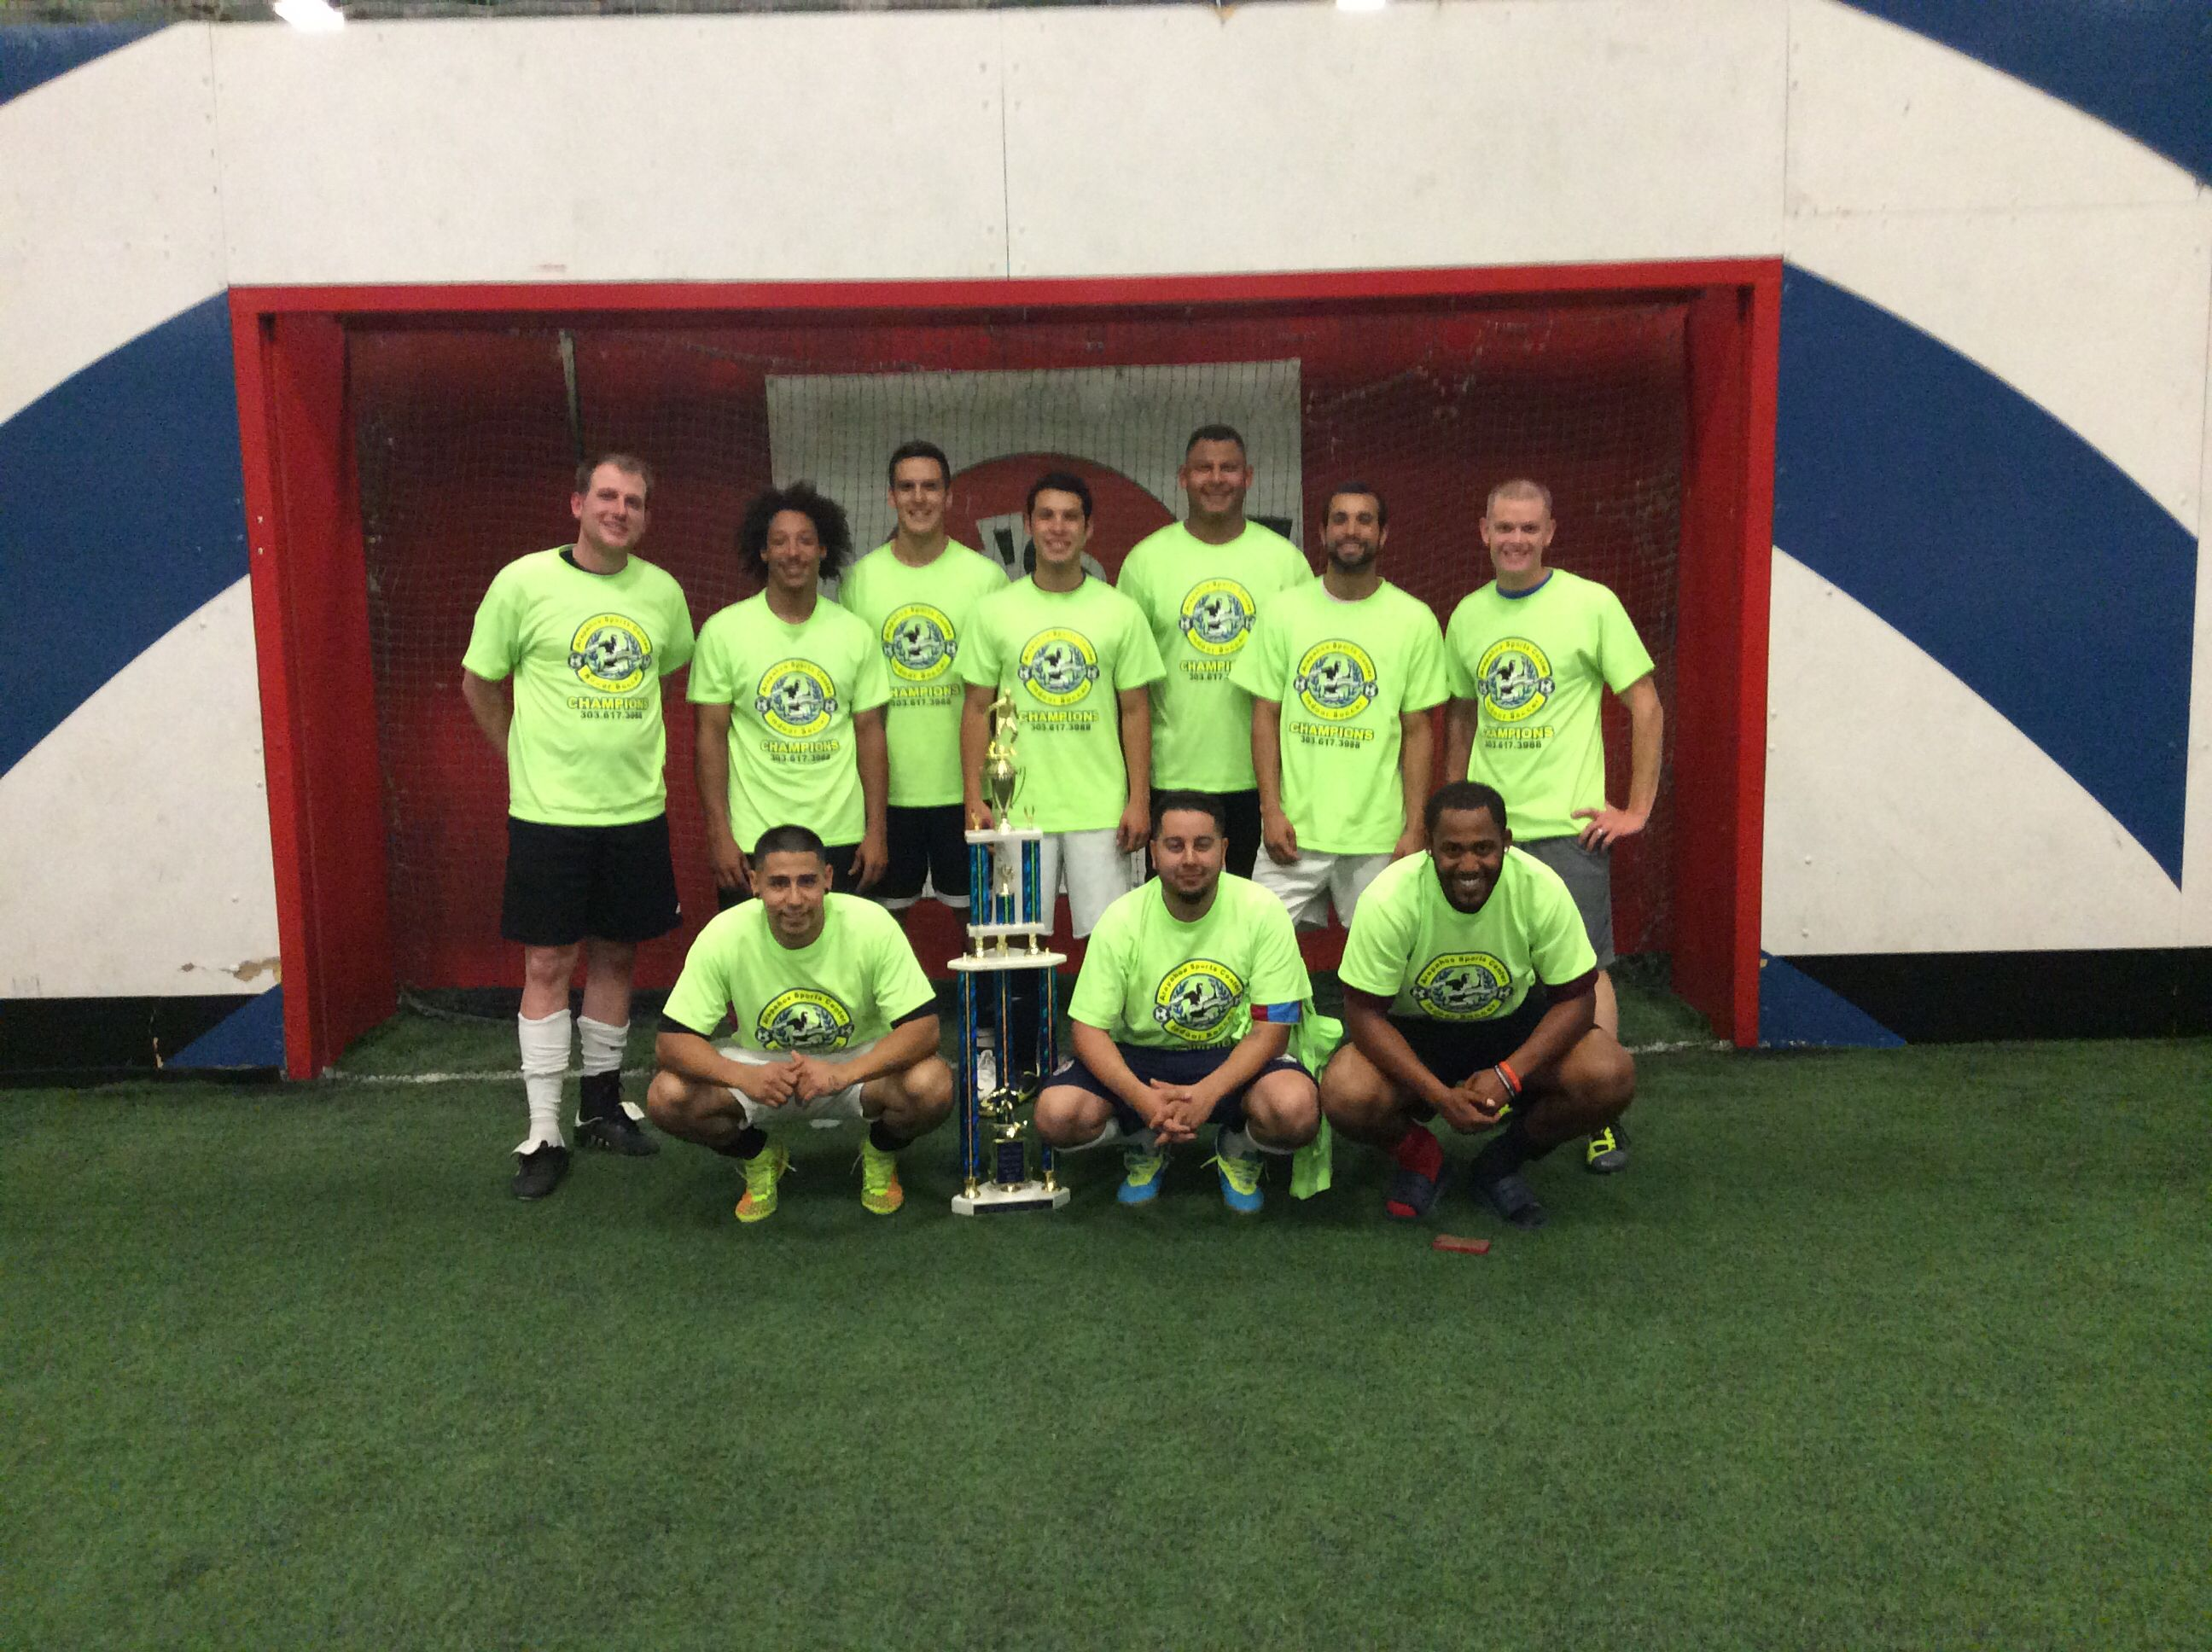 Champions Arapahoe Sports Center Home Decor Sports Indoor Soccer